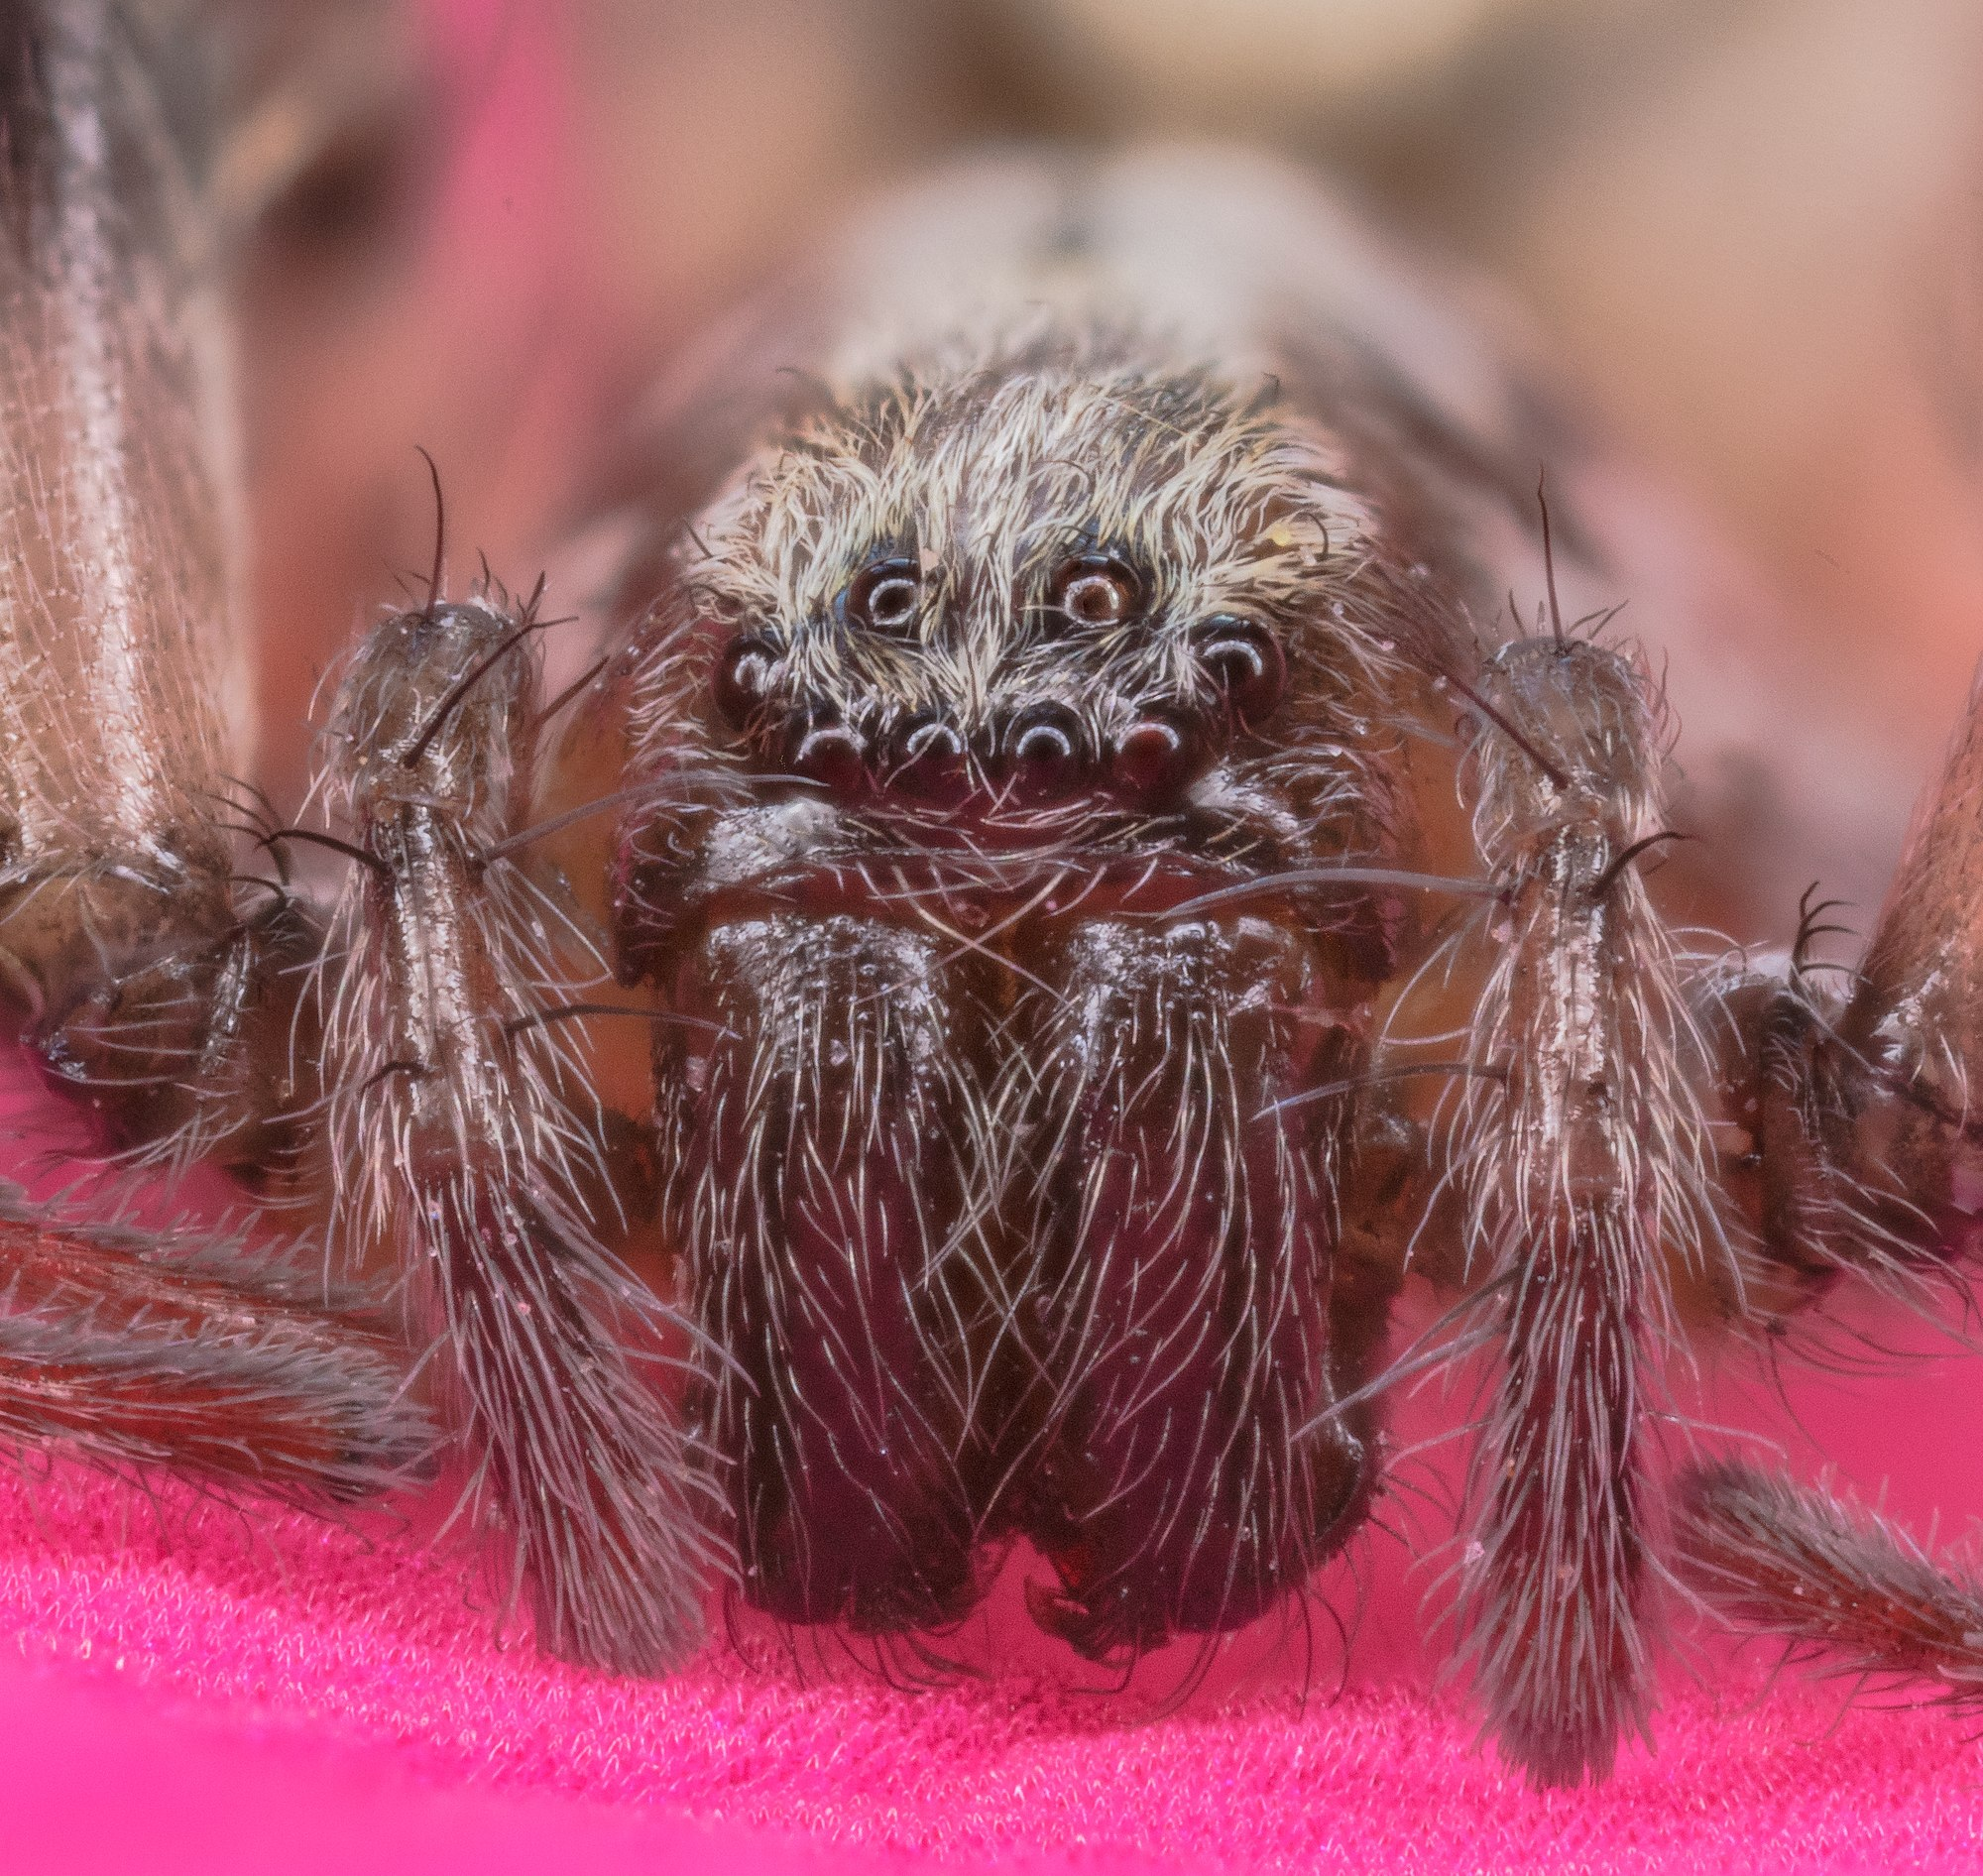 Wall spider (Dictyna civica), Munich, Germany